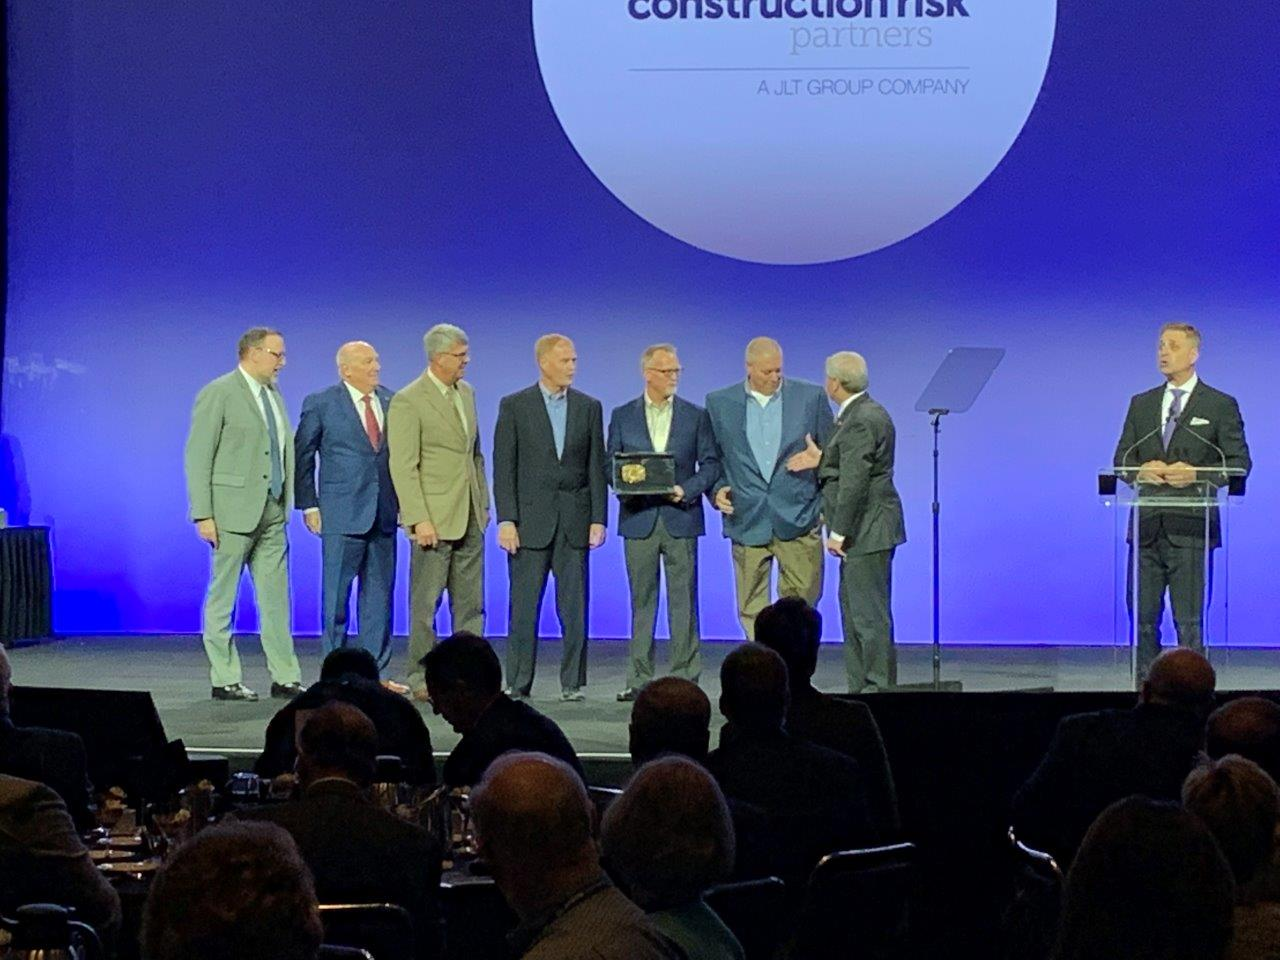 APS Senior Project Manager Dewayne Keegel (third from left) joins Sundt employee-owners Ken Dean, Steve Roberts and Derek Neill in accepting the 2019 JLT Build America Award.